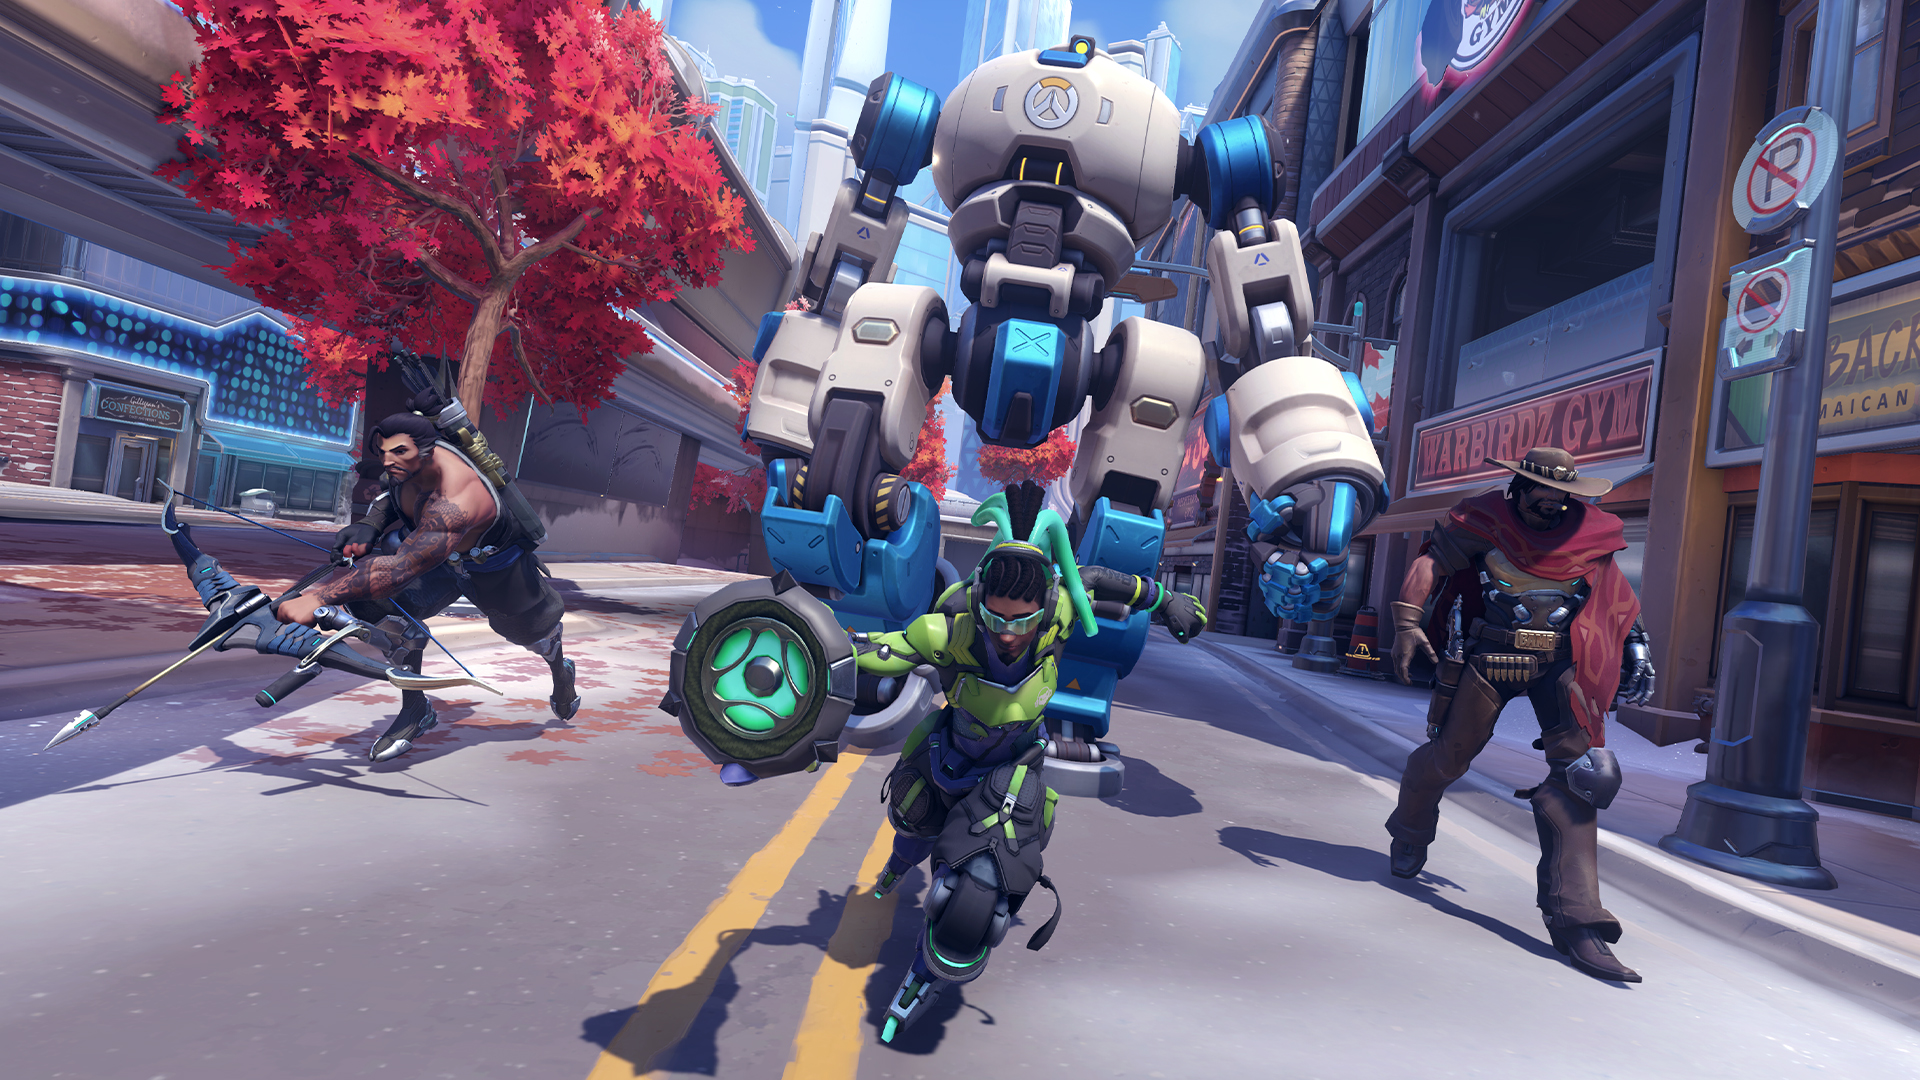 Here's how Overwatch 2's Push mode works